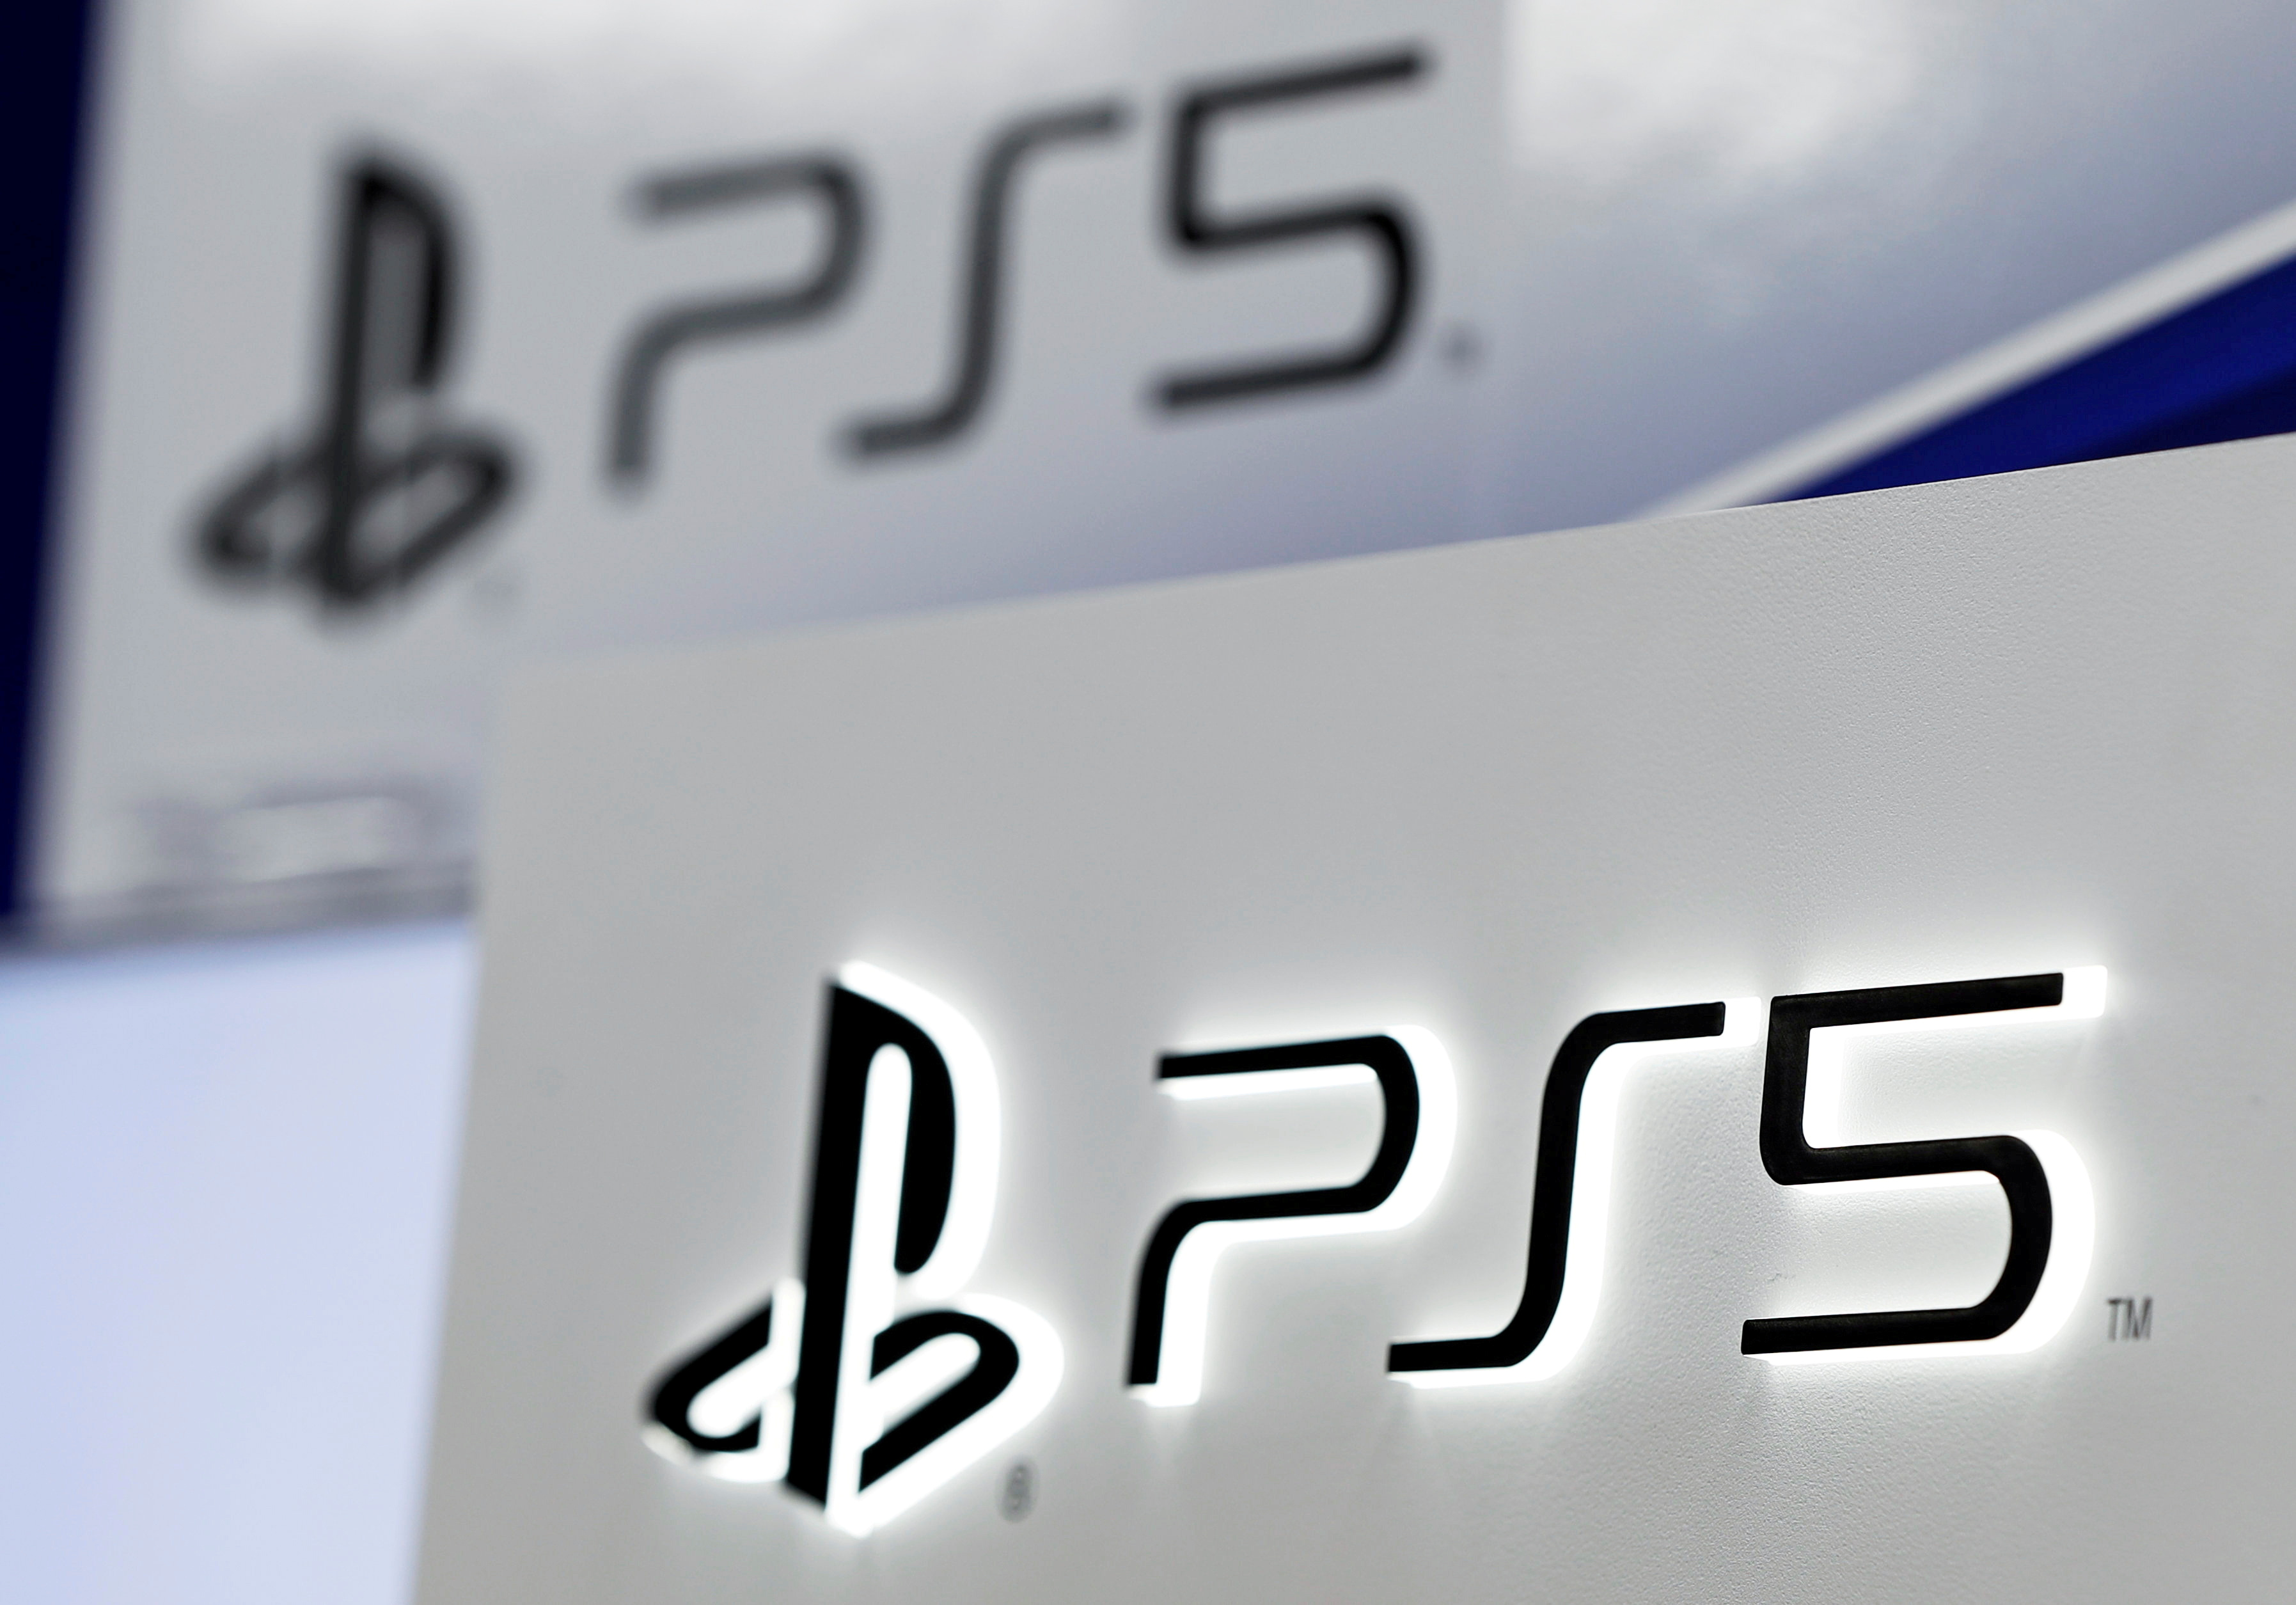 The logos of Sony's PlayStation 5 are displayed at the consumer electronics retailer chain Bic Camera, ahead of its official launch, in Tokyo, Japan November 10, 2020.  REUTERS/Issei Kato/File Photo